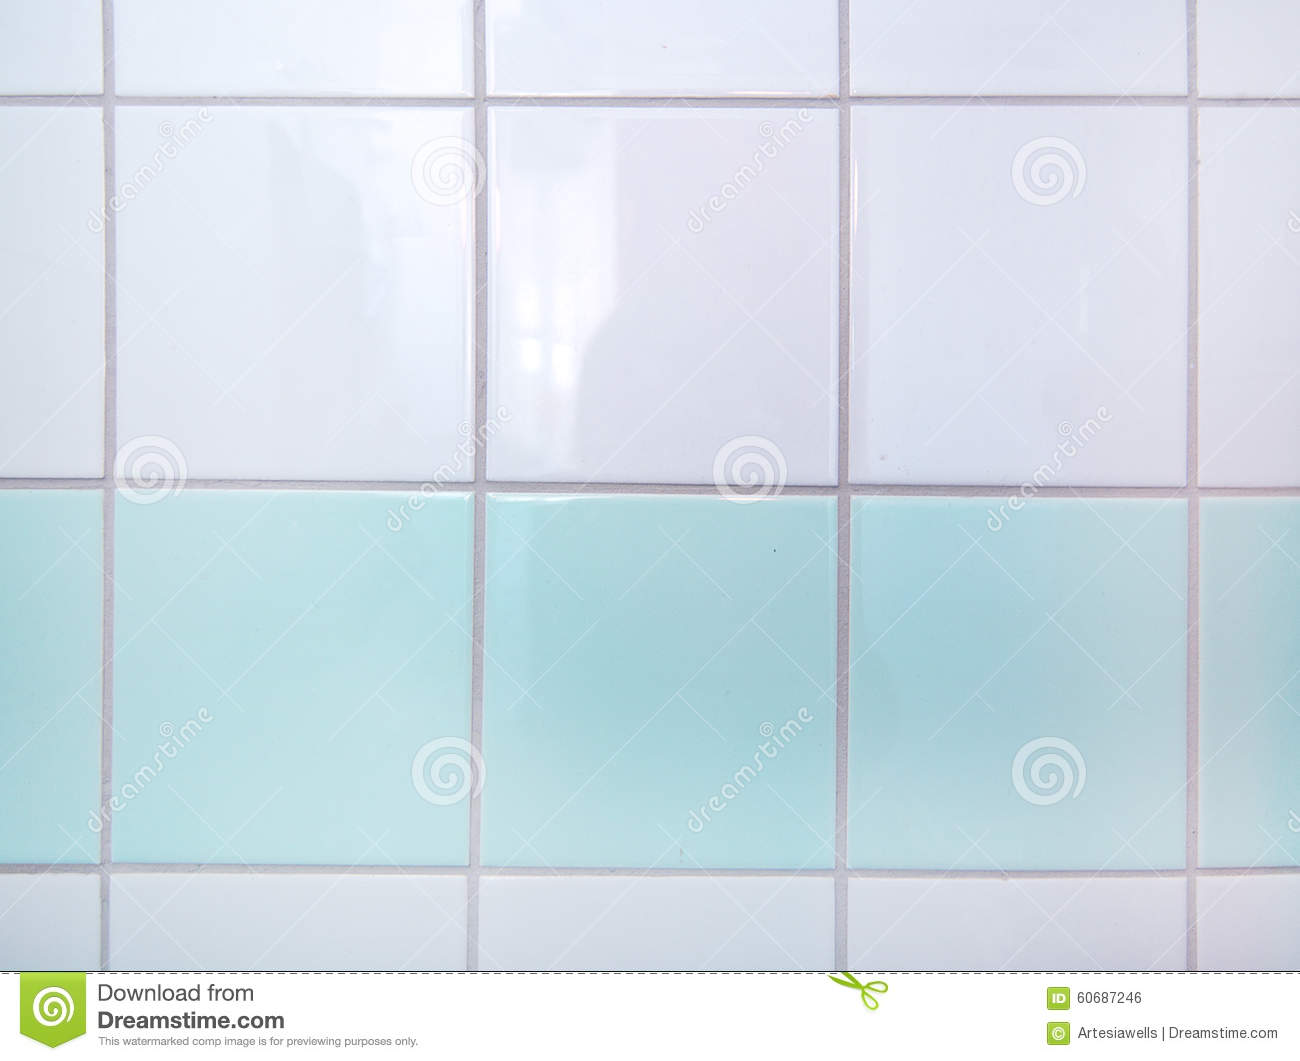 Bathroom Tiles Background bathroom tiles background stock photo - image: 60687246